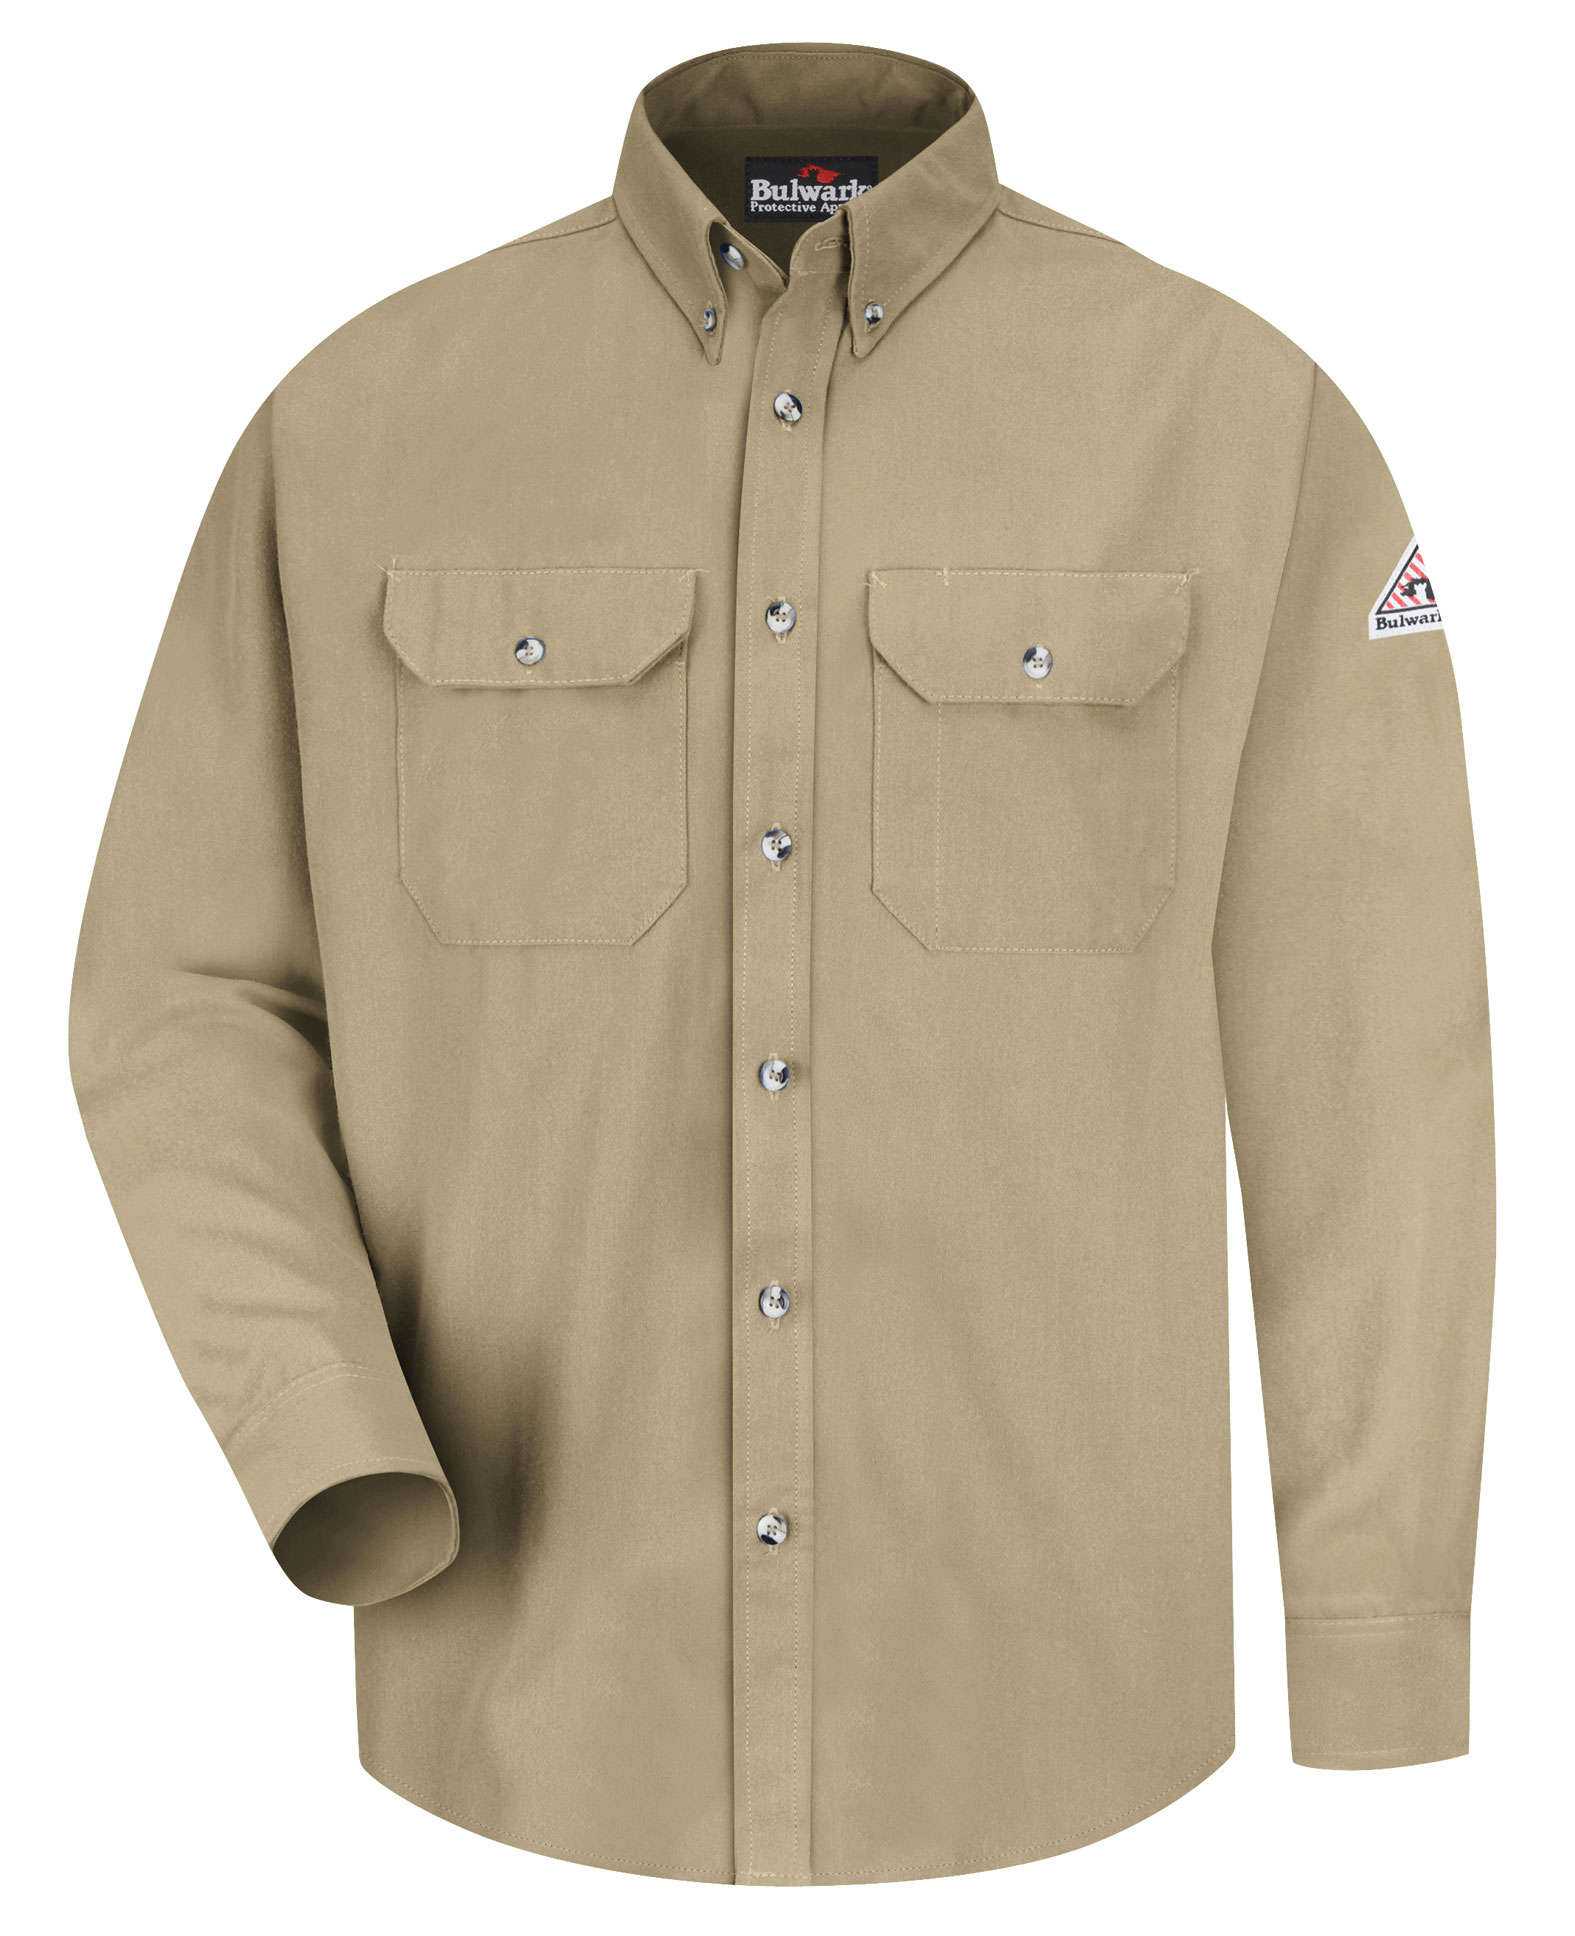 Bulwark Cool Touch� Deluxe Shirt with CAT2 Fire Rating